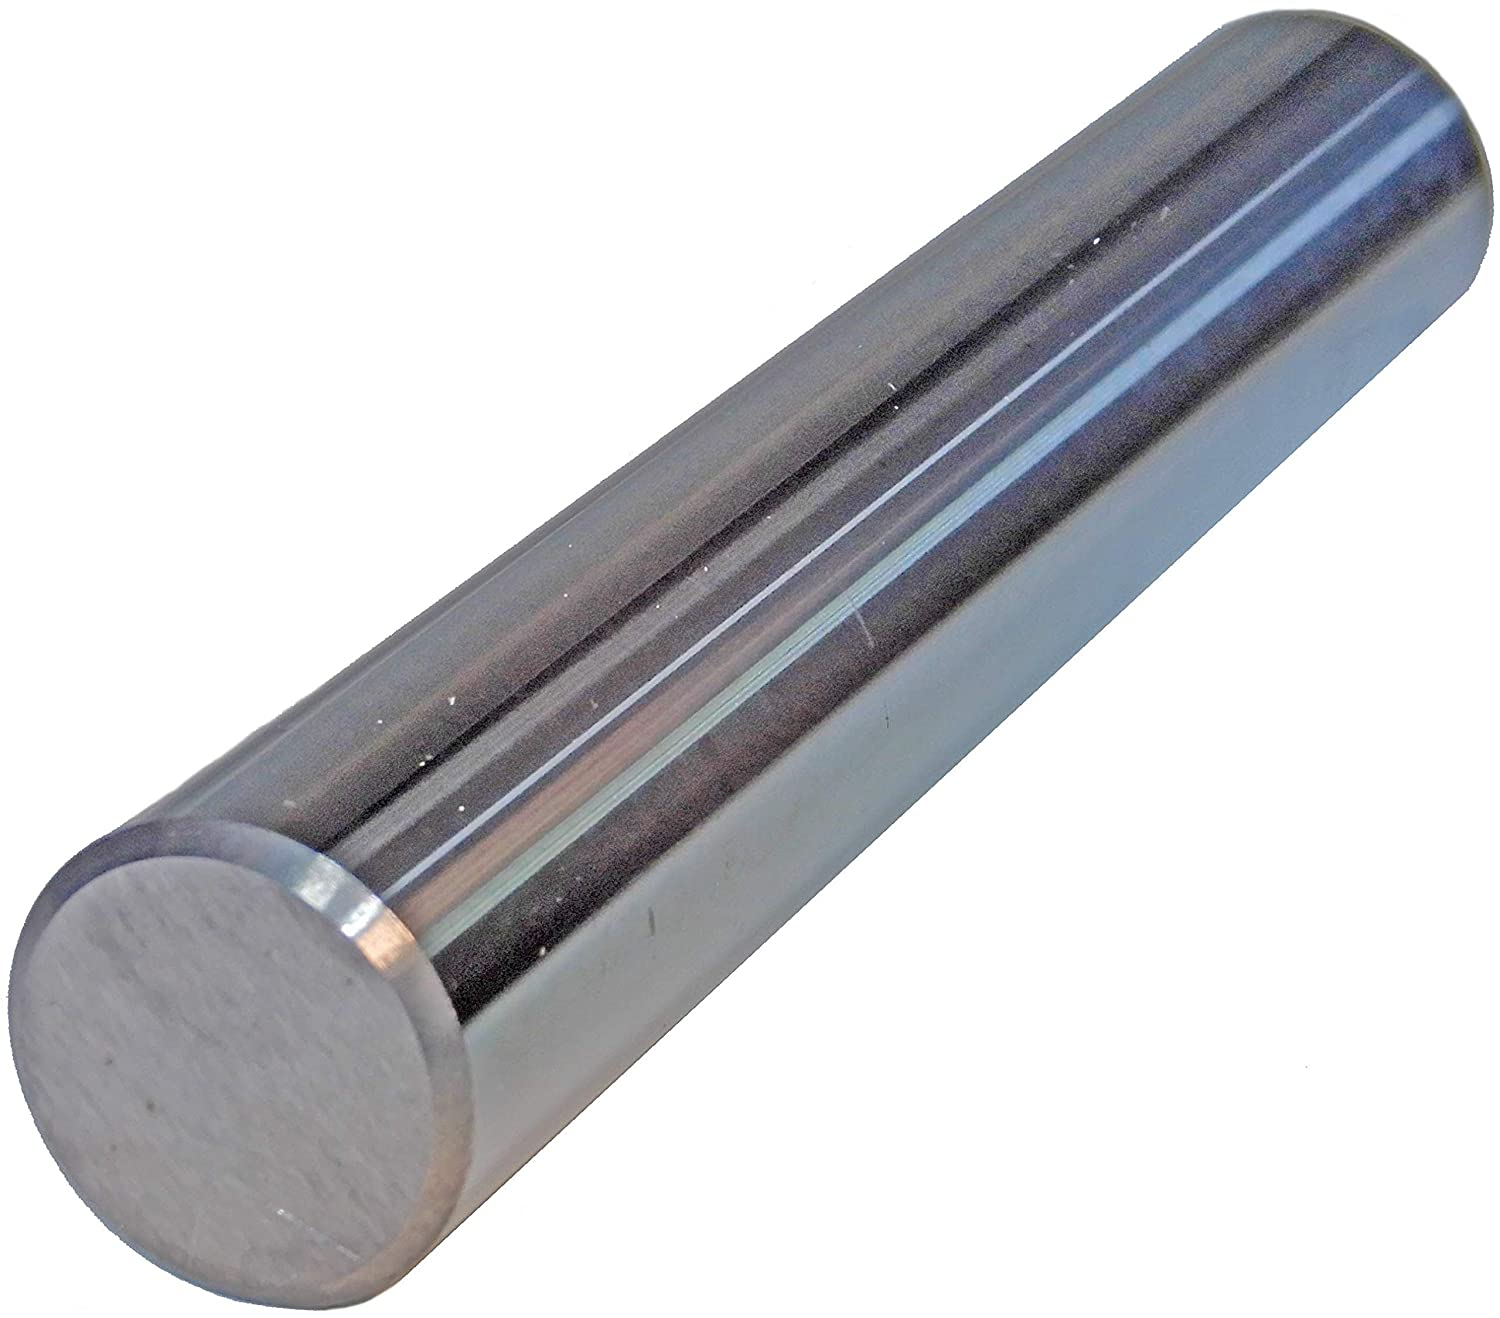 Castlebar 8mm X 110mm Ground Polished Chamfered Cemented Tungsten Carbide Round Rod Grade 9008//C2